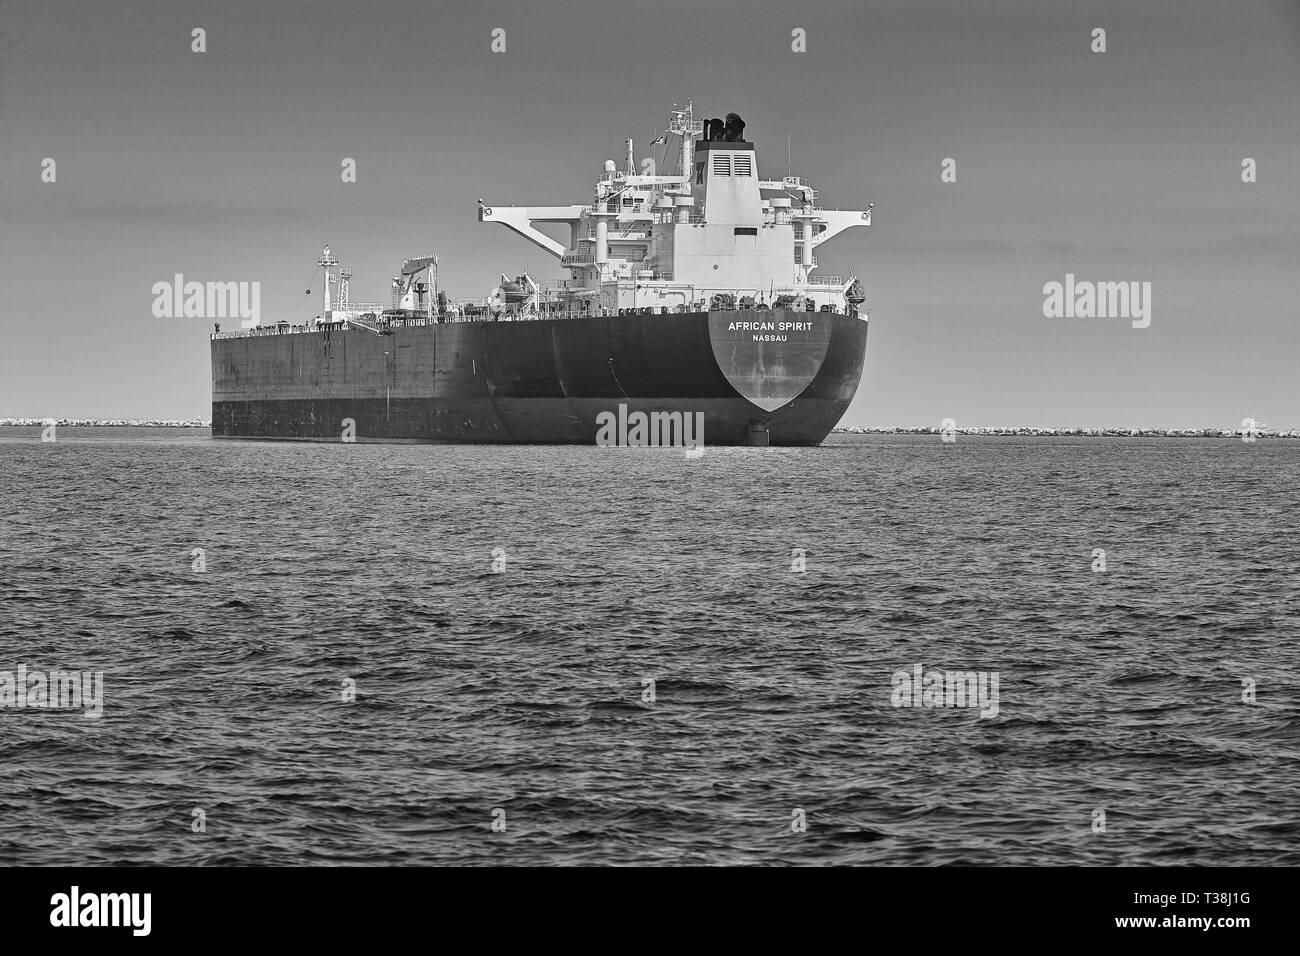 Black And White Image Of The Crude Oil Supertanker, African Spirit, Anchored In The Port of Long Beach, California. USA. - Stock Image